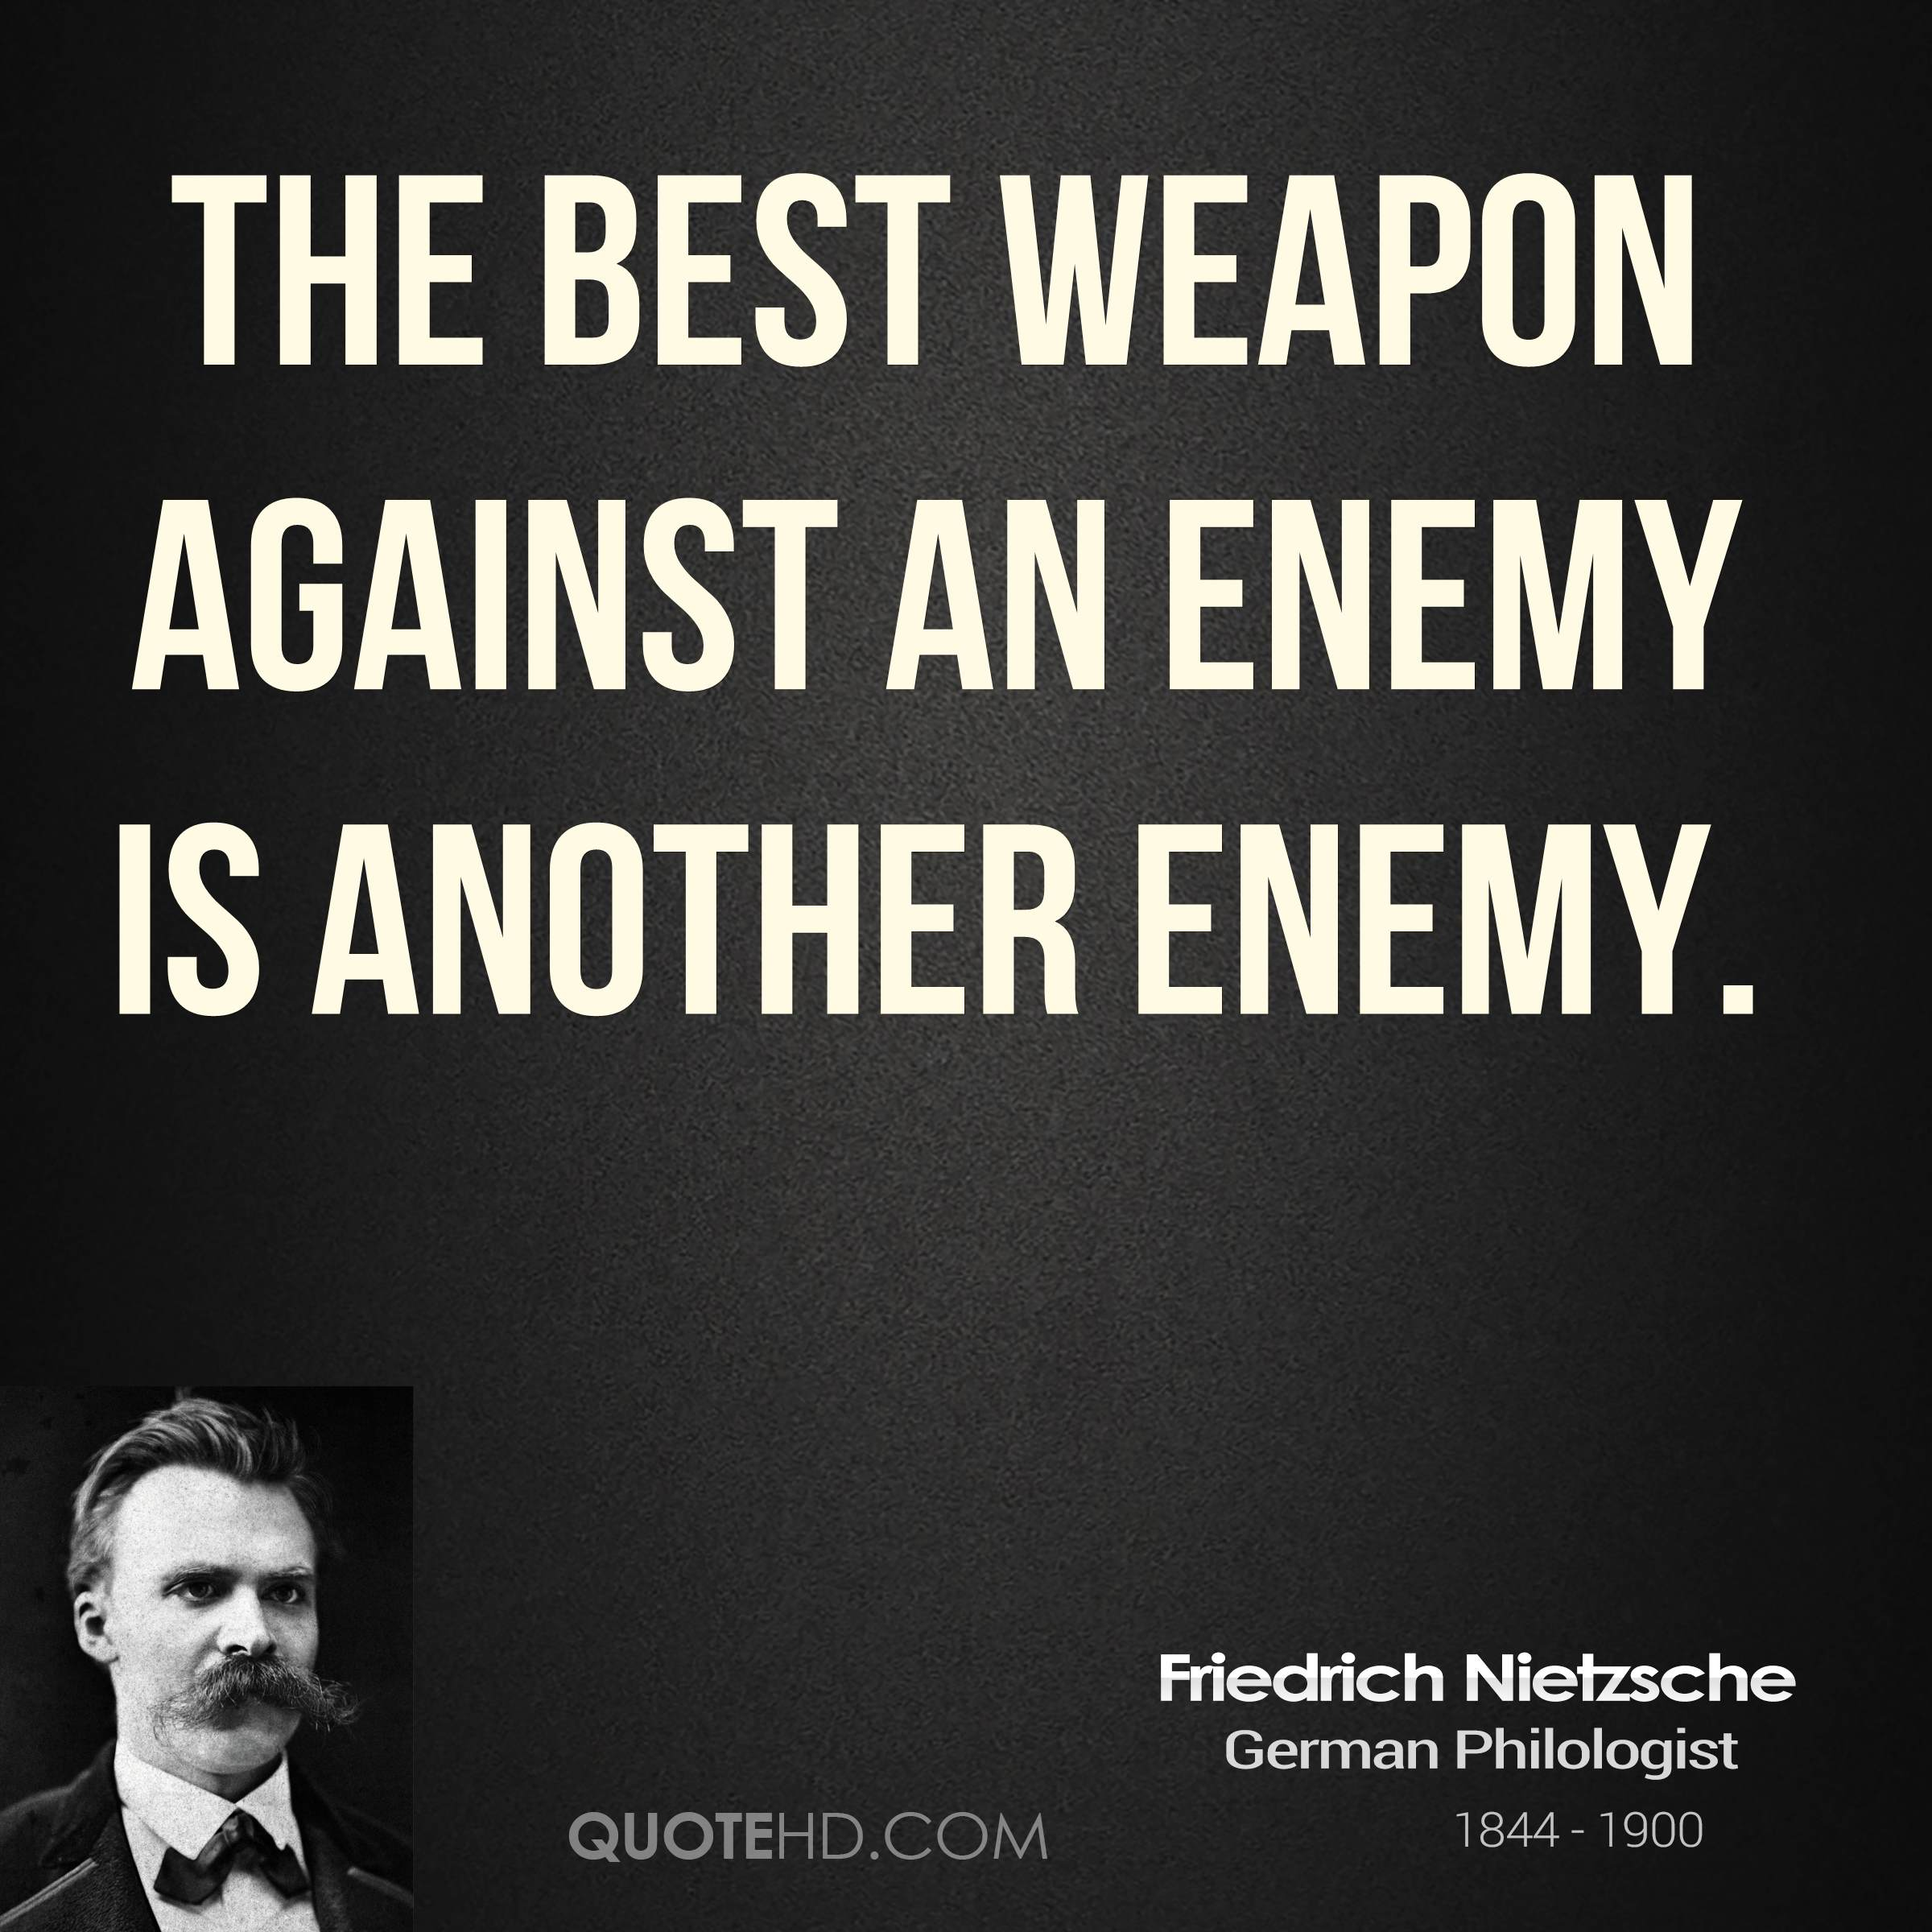 Quotes On War: Nietzche Quotes On War. QuotesGram